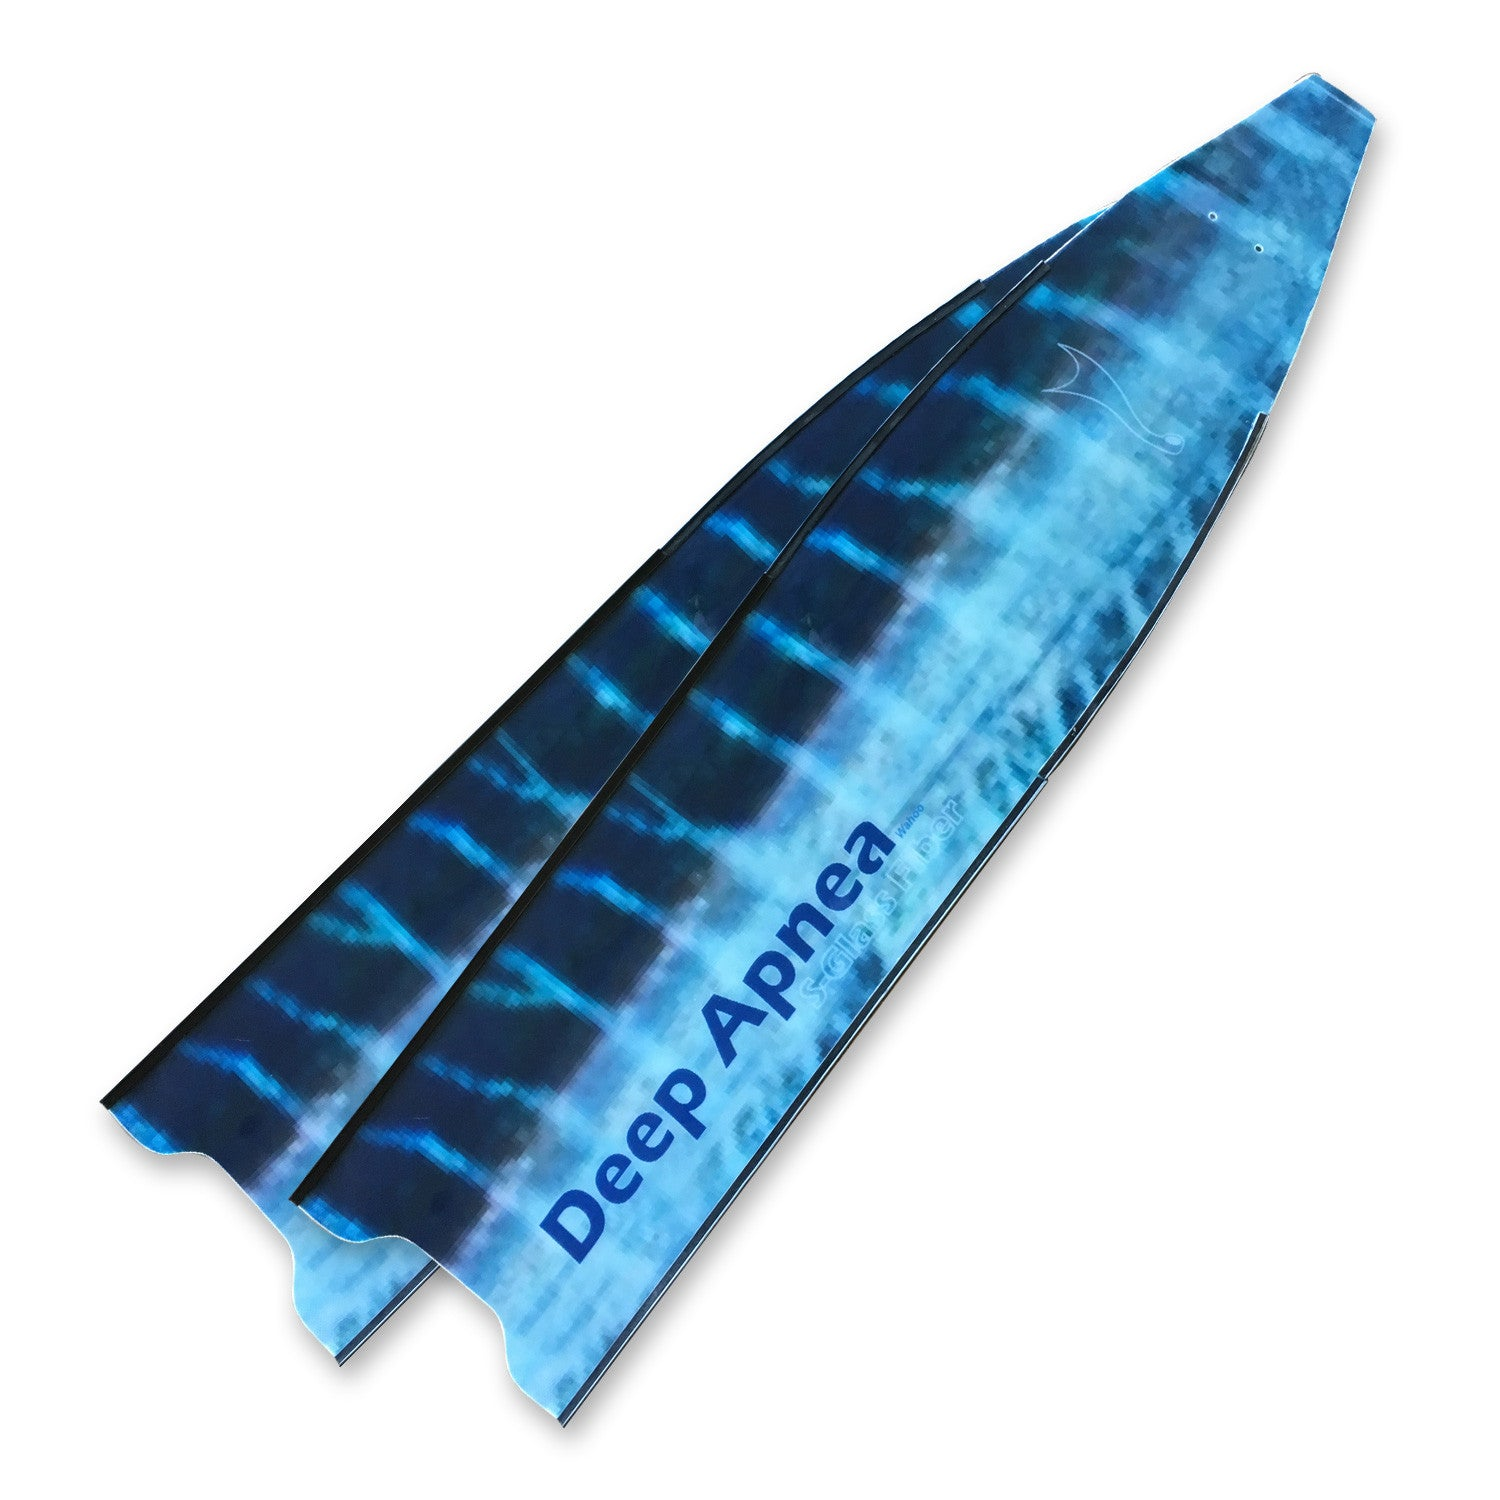 Deep Apnea Wahoo S-Glass Fins